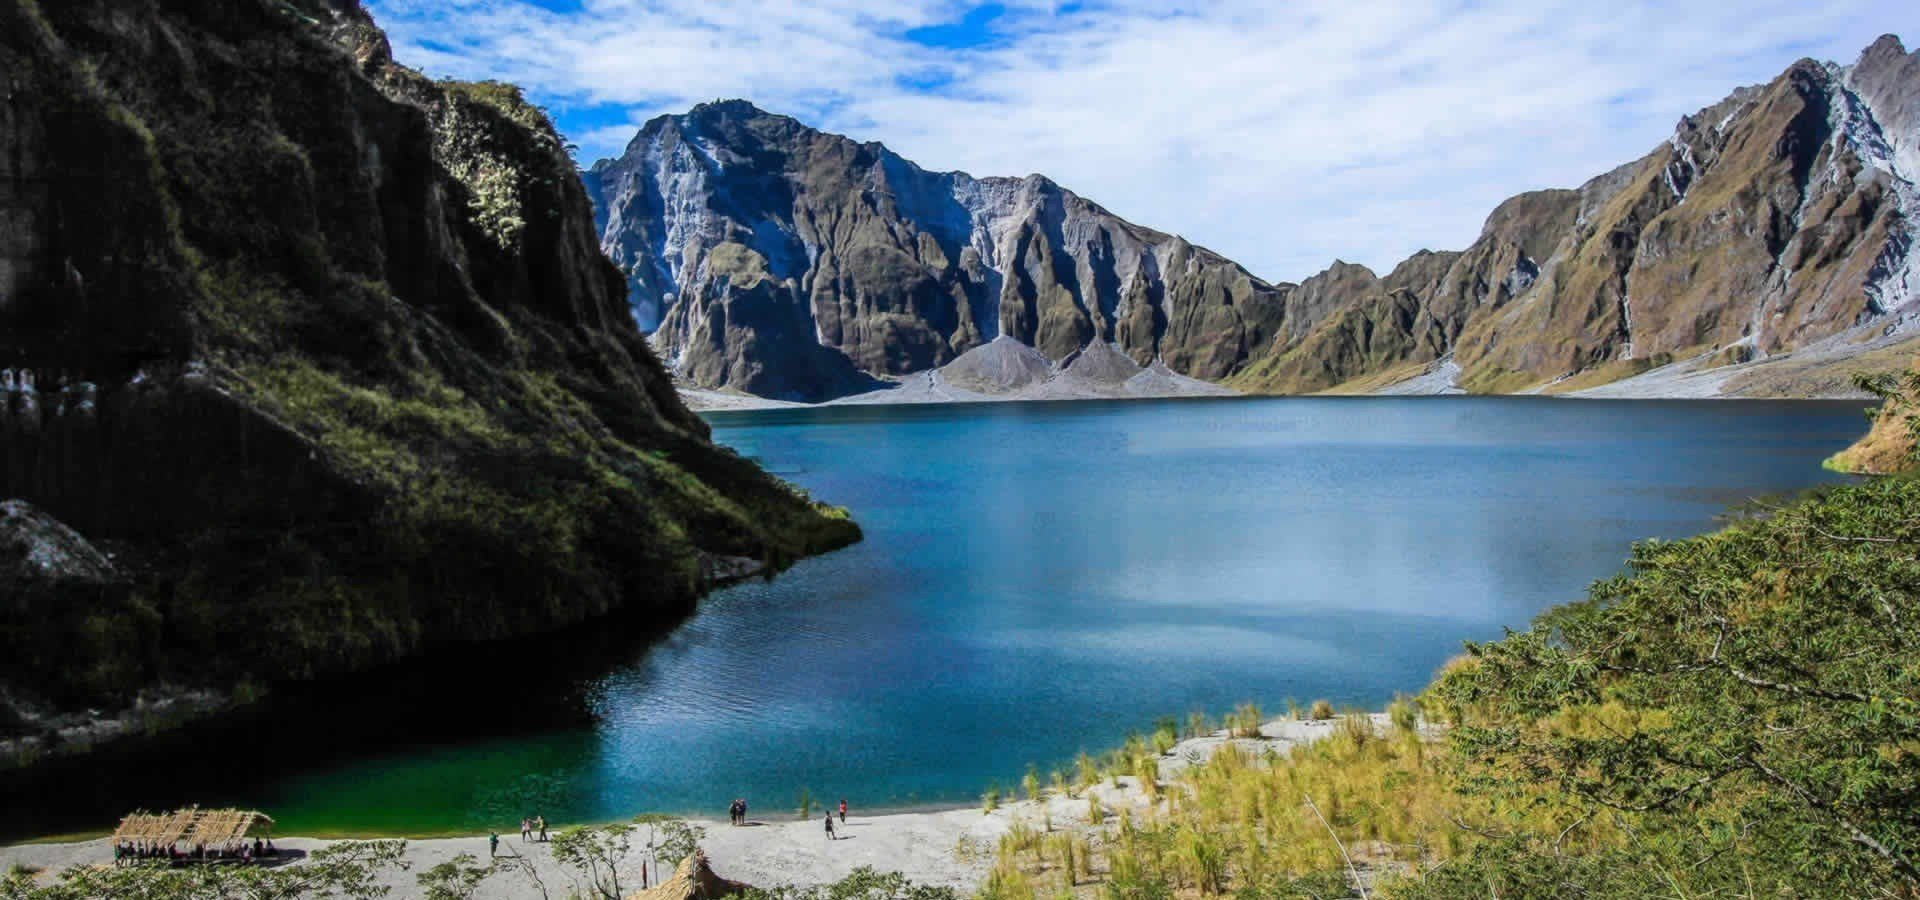 Crater Lake is one of the attractions to visit while staying at Quest Hotel Clark